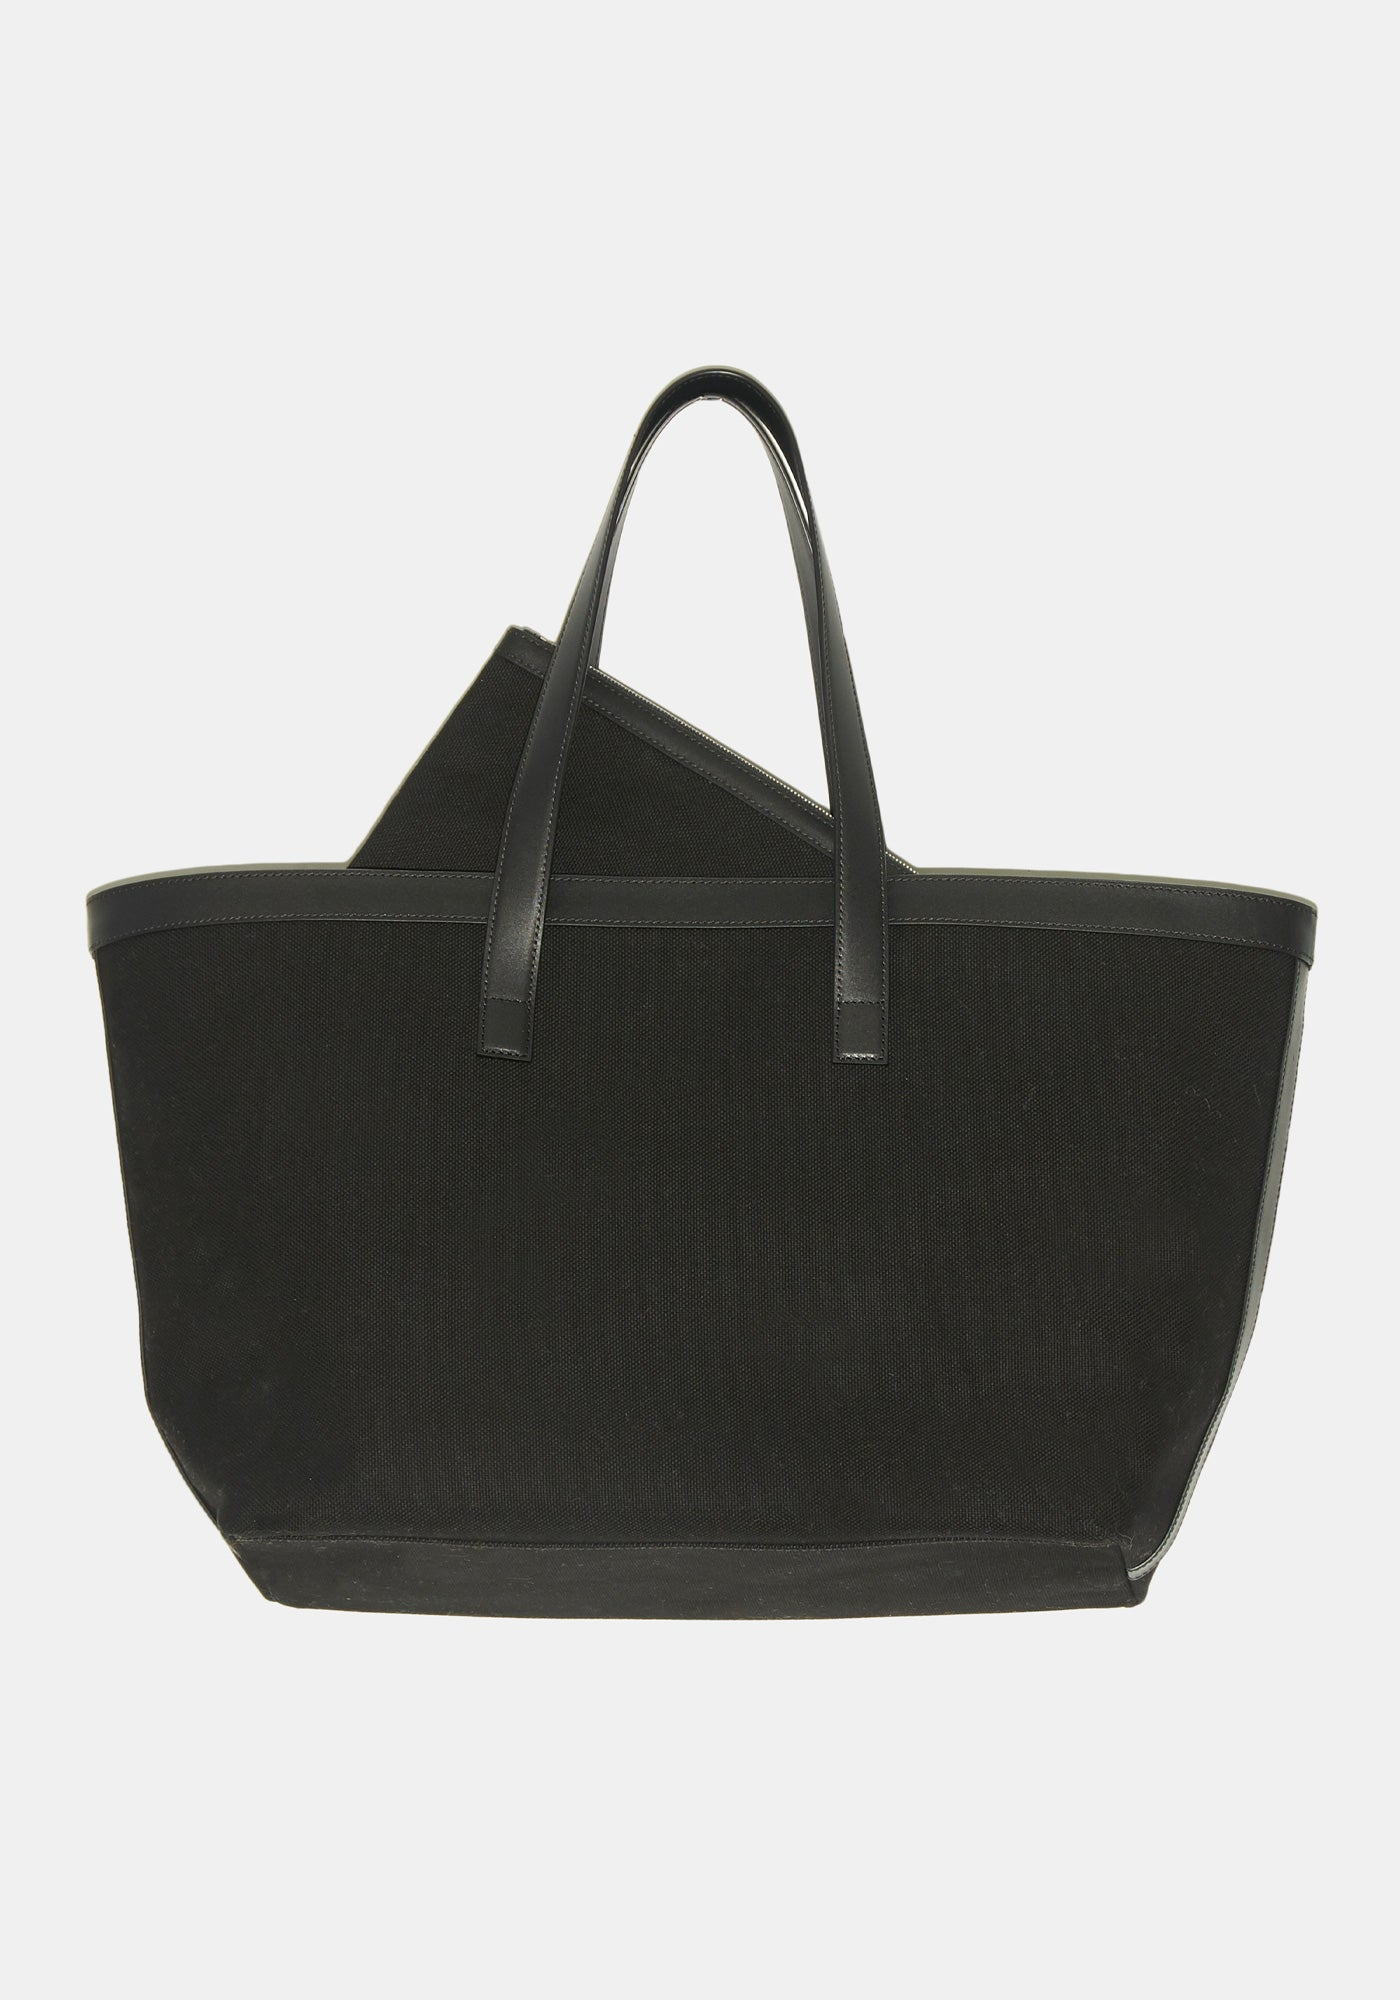 Rylie Tote Bag in Black